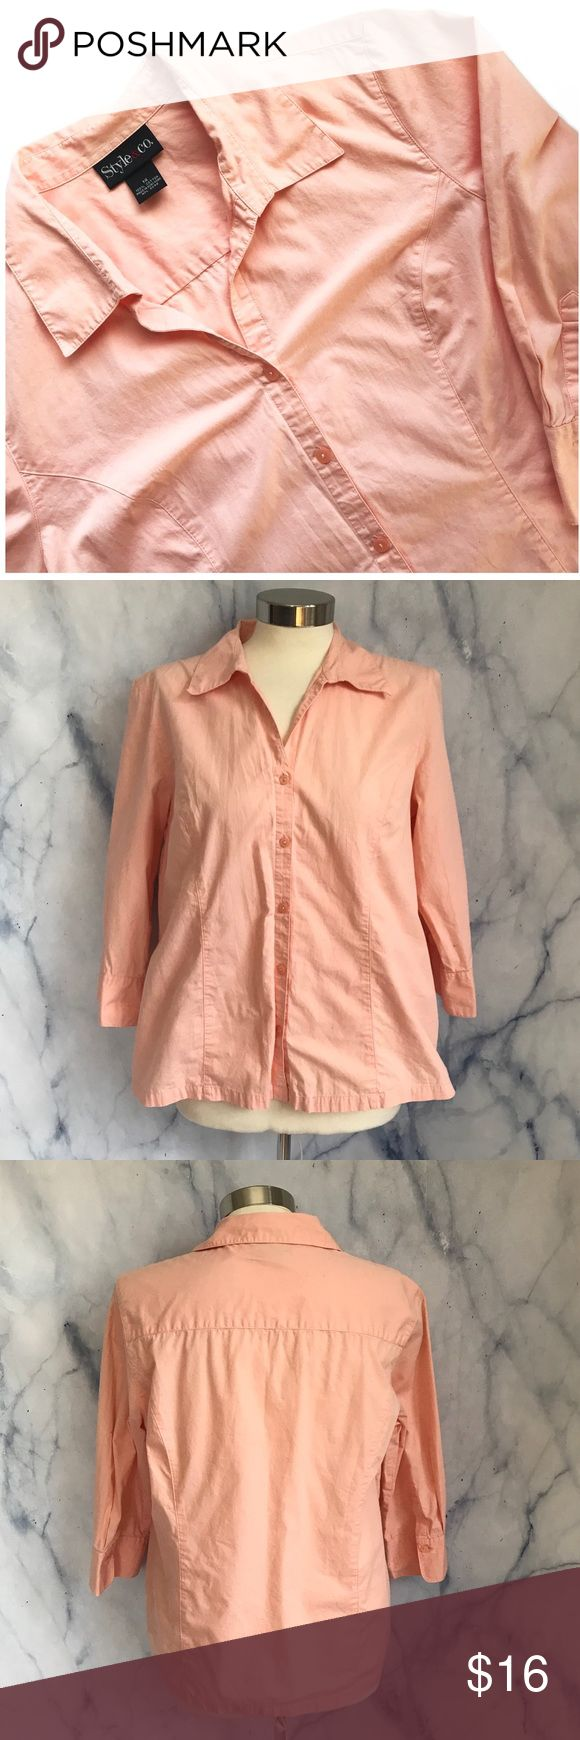 Style & Co Peach Button Down Shirt Light peach color, button down blouse with cream buttons, collar, 3/4 sleeve. 100% cotton. Style and Co from Macys size 14. Style & Co Tops Button Down Shirts